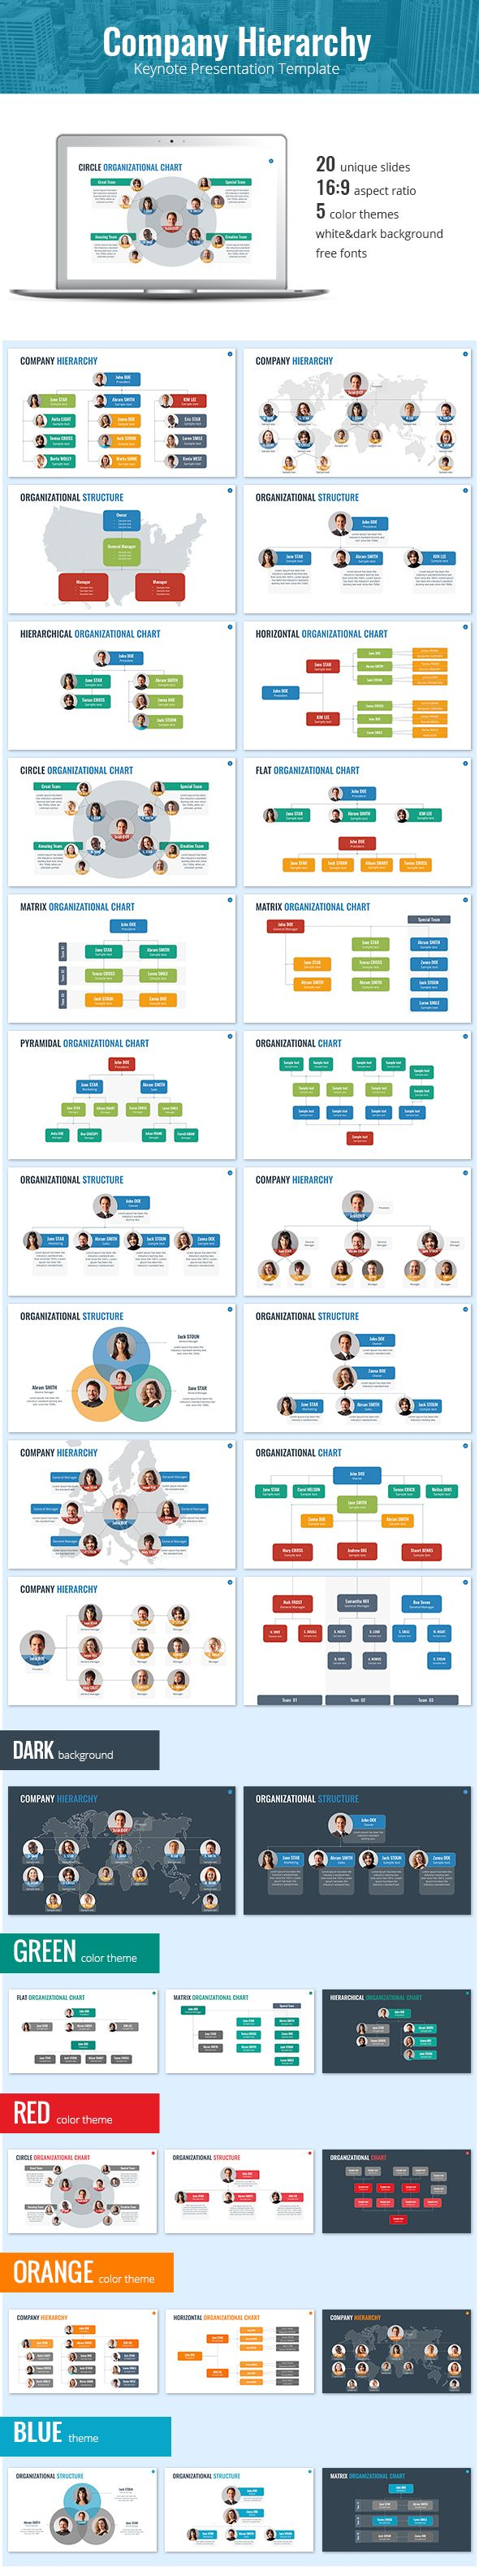 Organizational Chart and Hierarchy Keynote Template